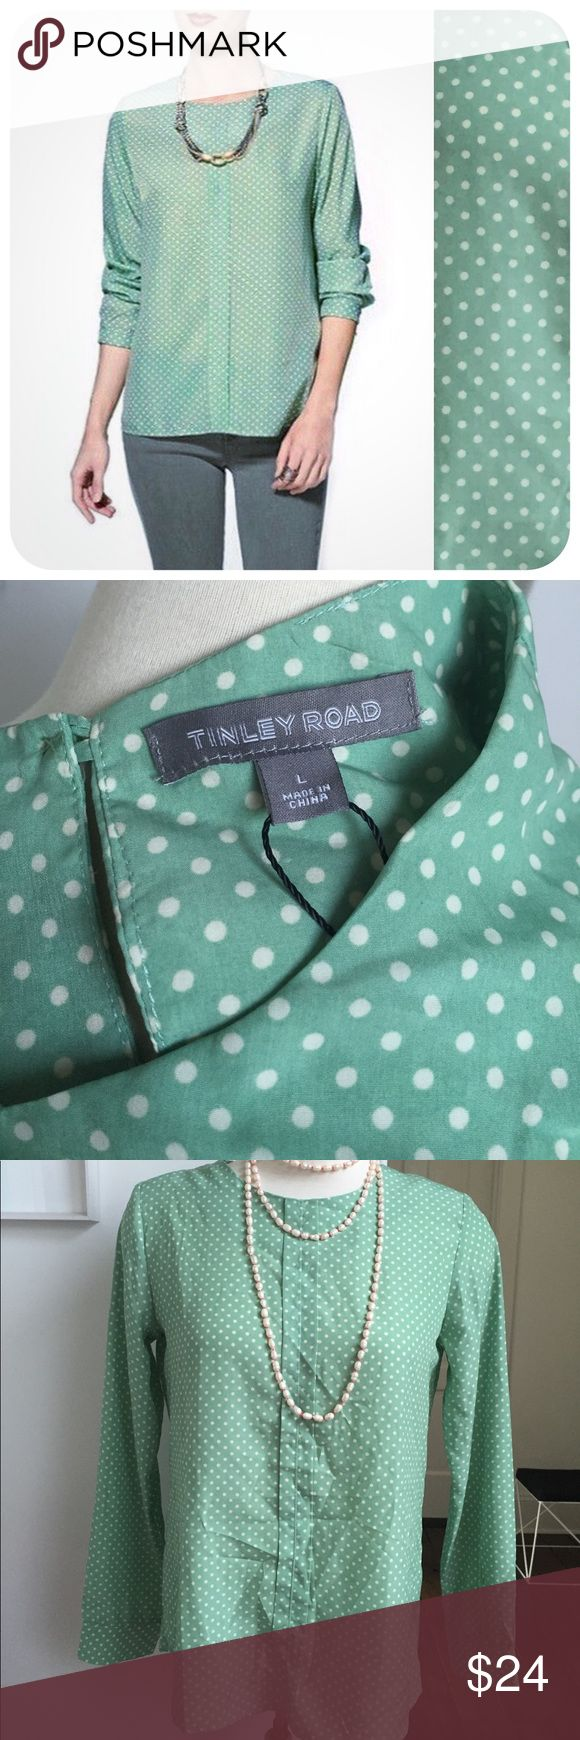 "{{ Tinley Road }} Piperlime Mint Green Dot Blouse Gorgeous, new with tags, Tinley Road size Large silky blouse. Lovely light mint green color, with cream small polka dot pattern.  Beautiful option for work or a night out. Would be really cute with some tailored black shorts and black strappy sandals for a casual look!  Measurements: Length - 26""  Bust - 21"" (measured lying flat) Waist - 21"" (measured lying flat) Tinley Road Tops Blouses"